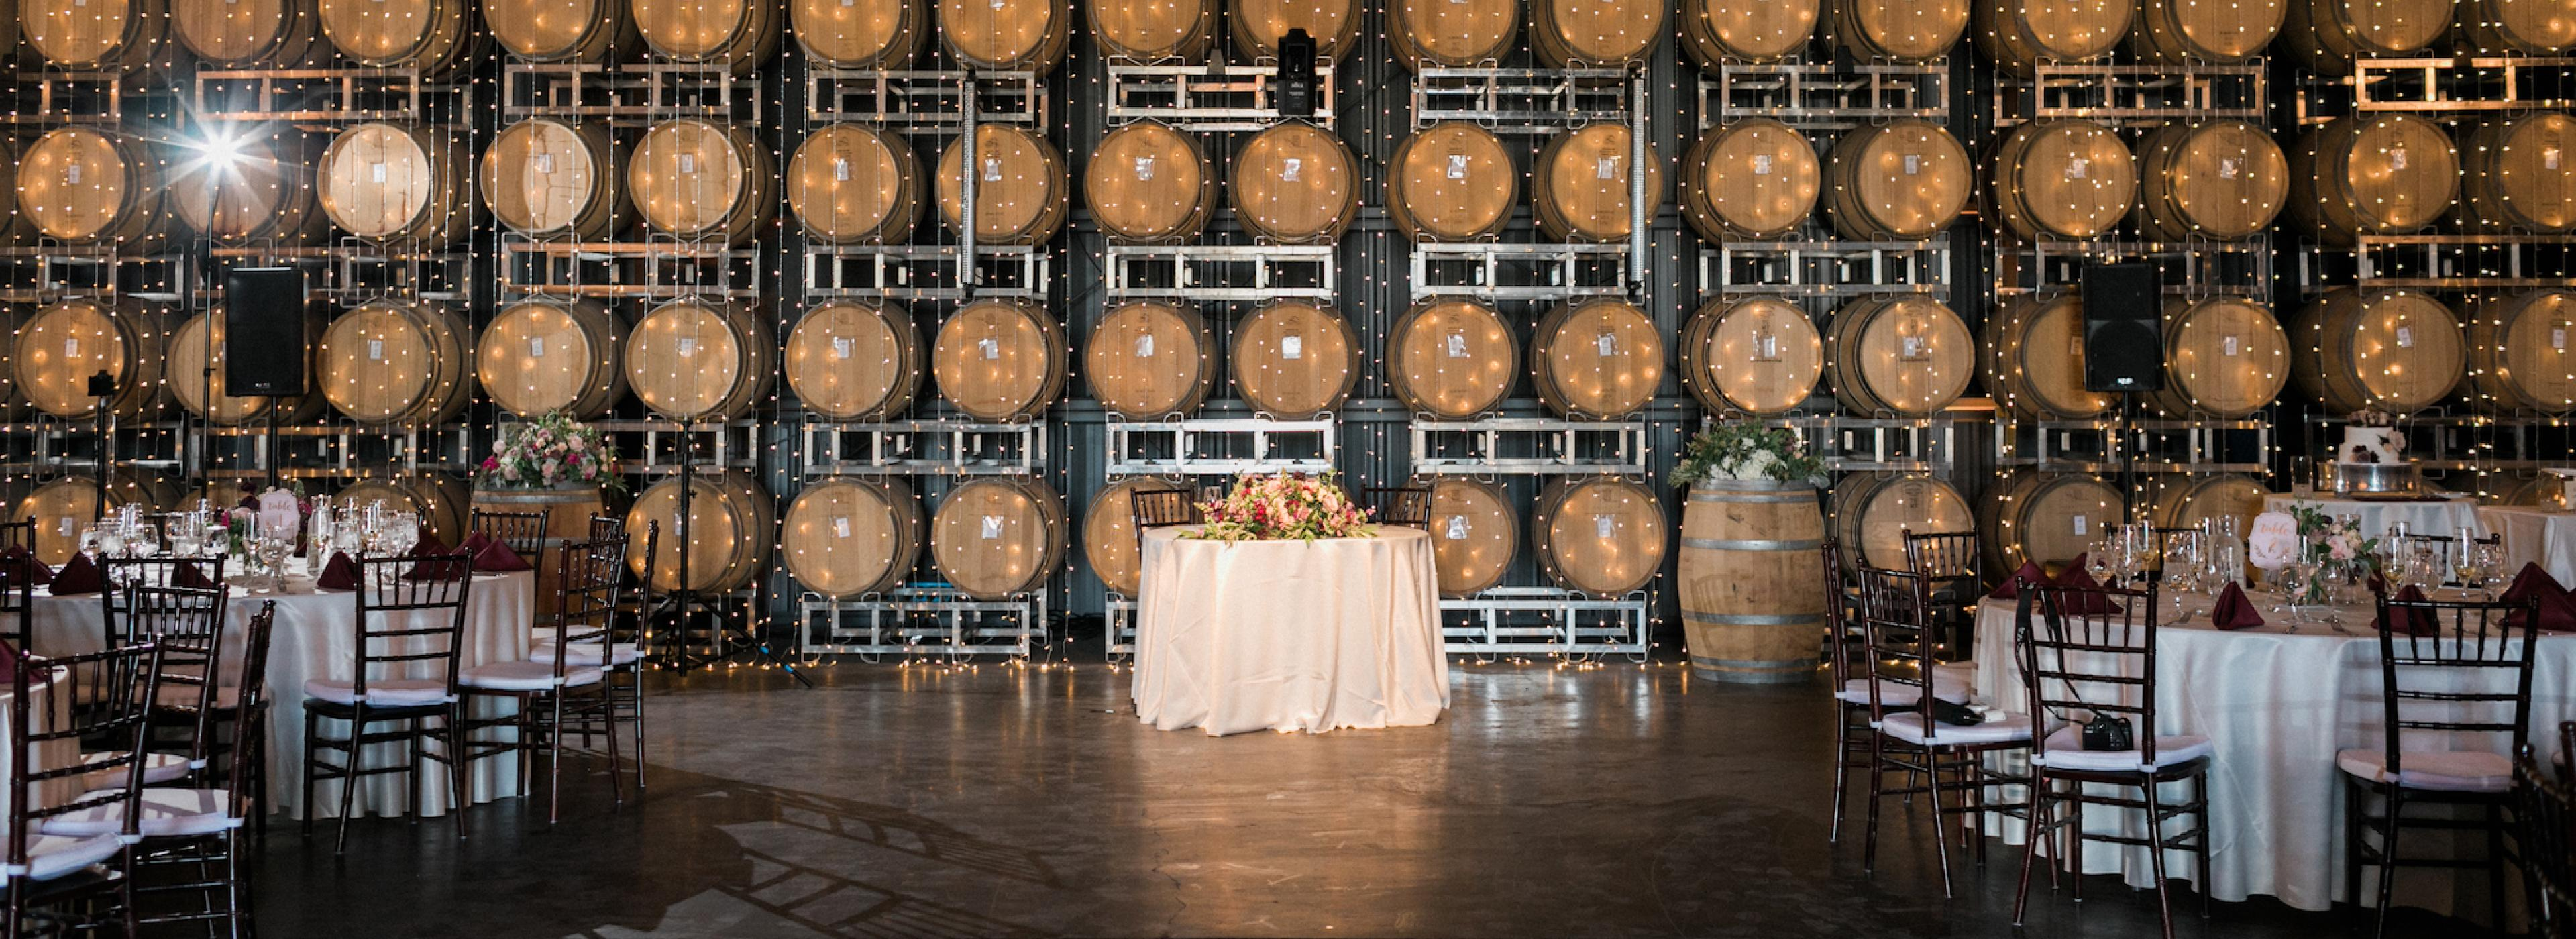 Leal Barrel Room